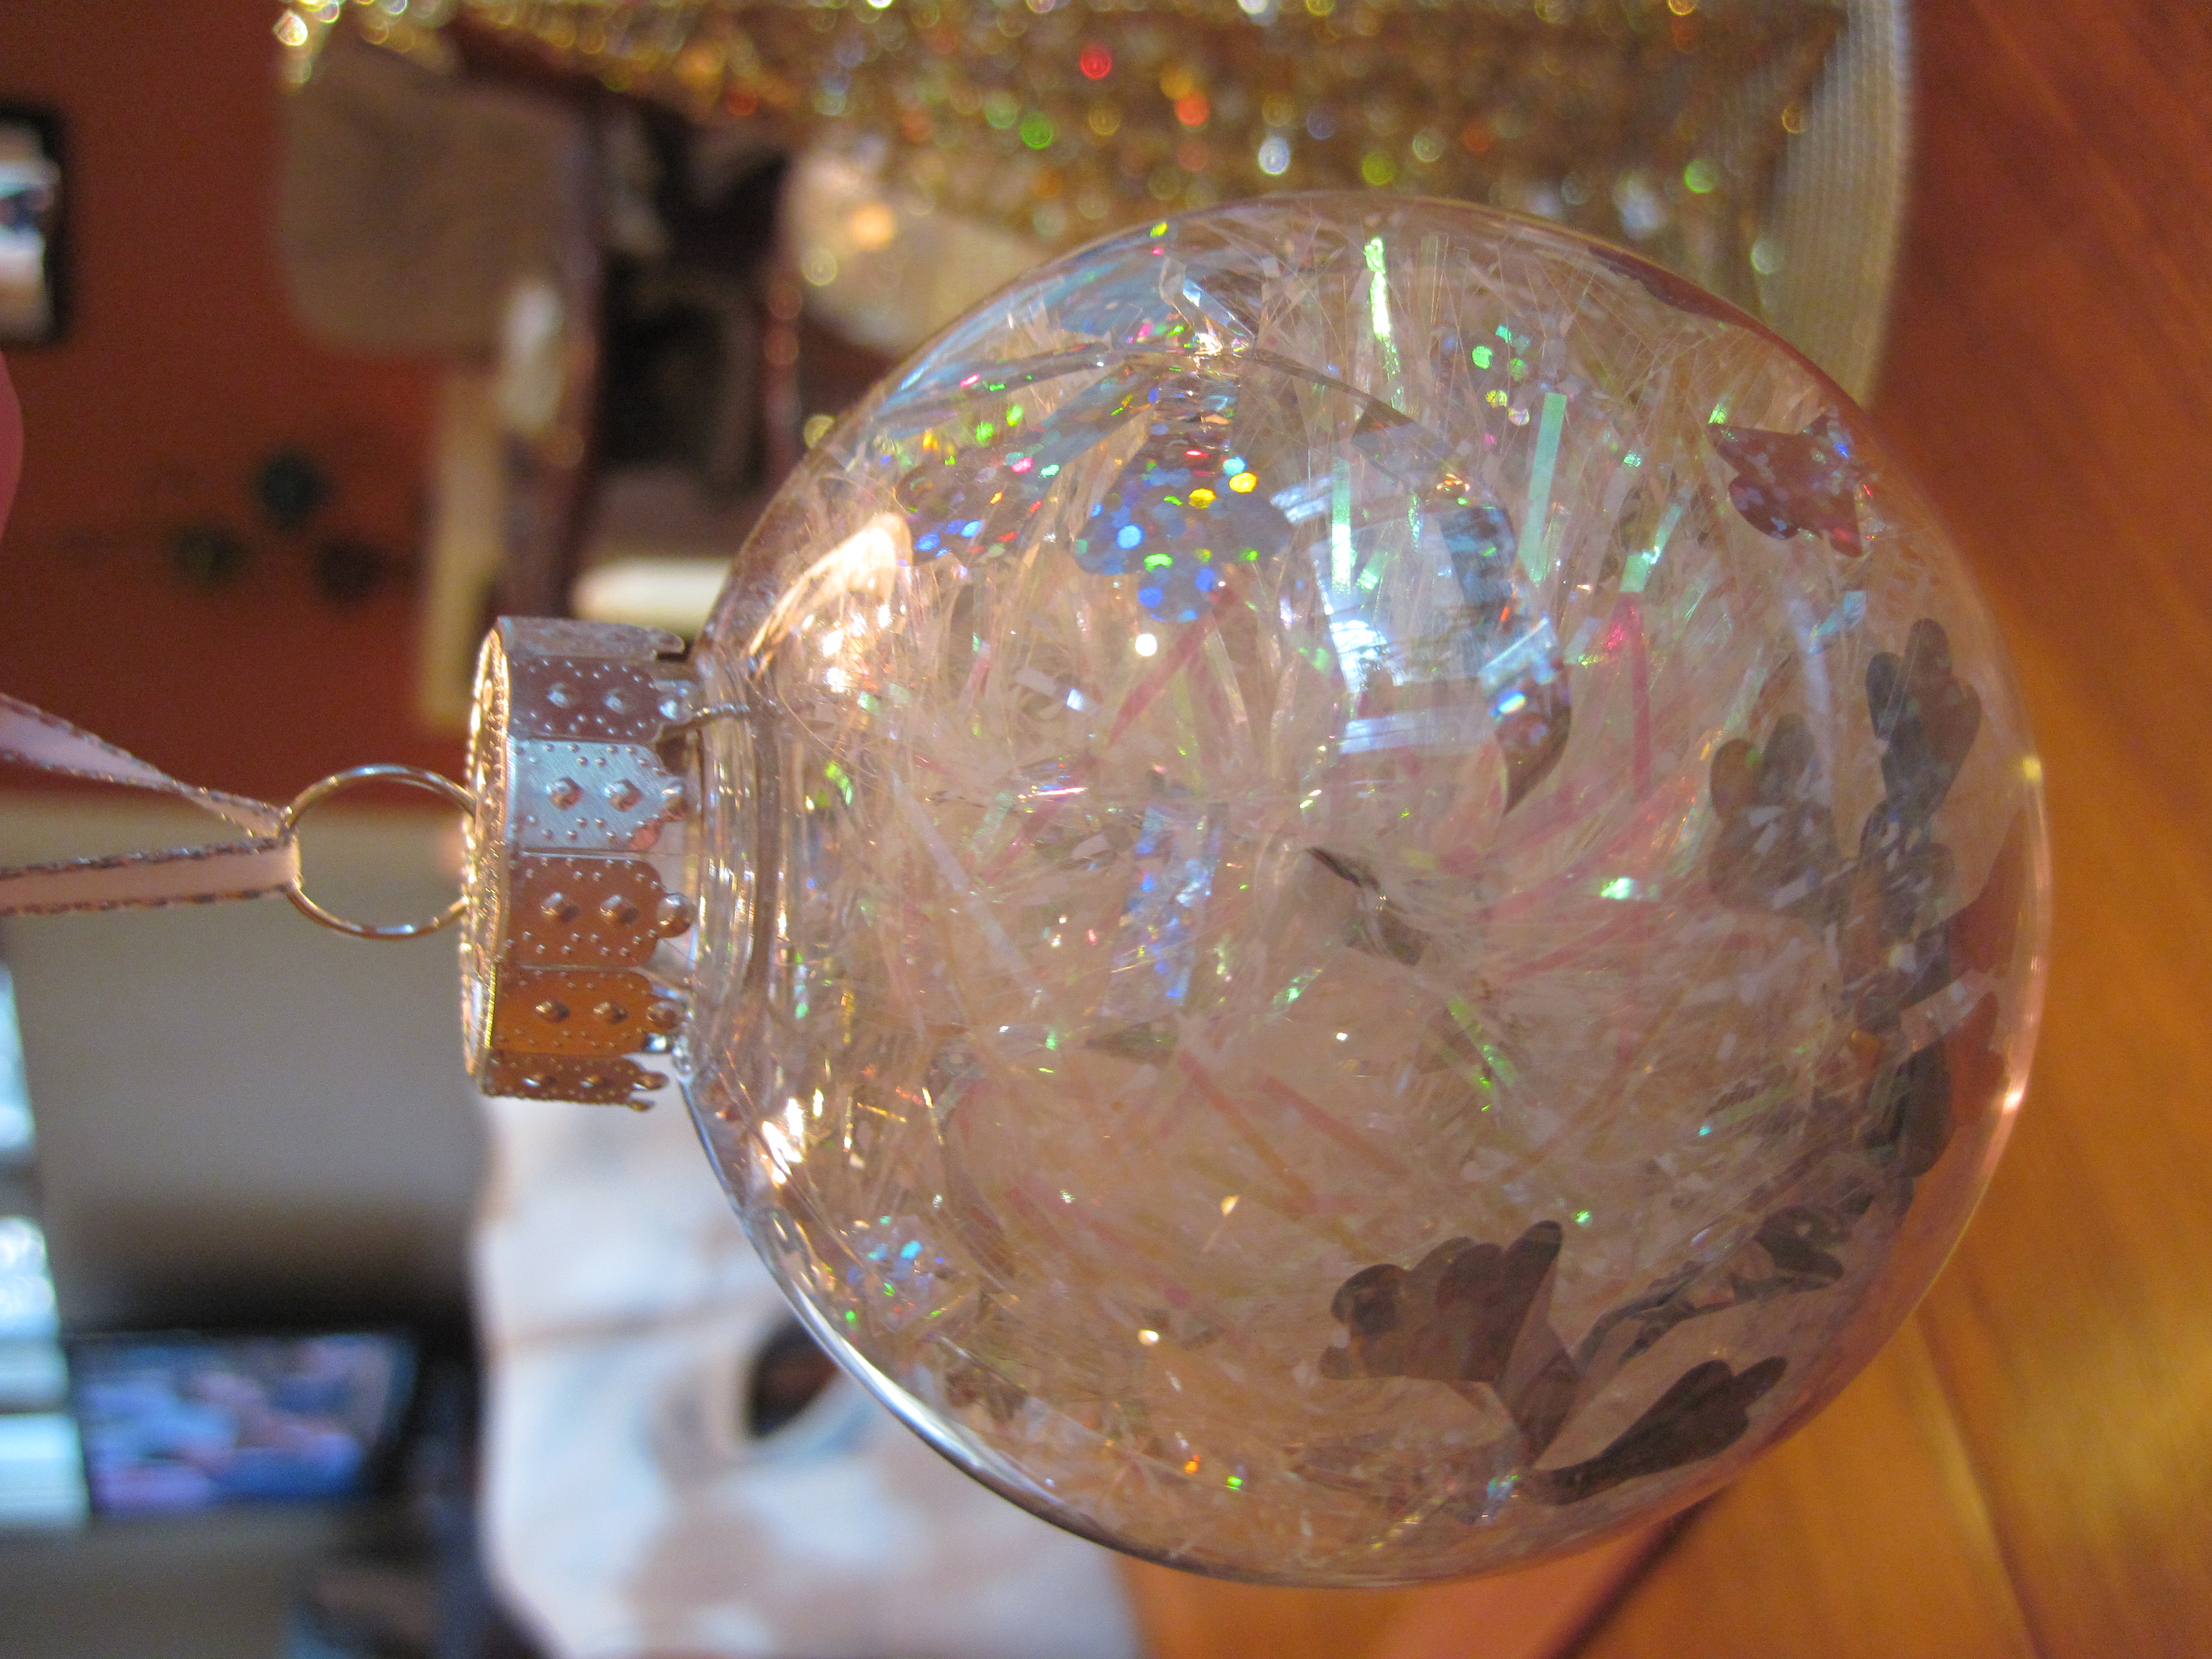 Clear plastic christmas ornament - Clear Christmas Bulbs For Crafting And On The Tree Literally The Crafting Time For That